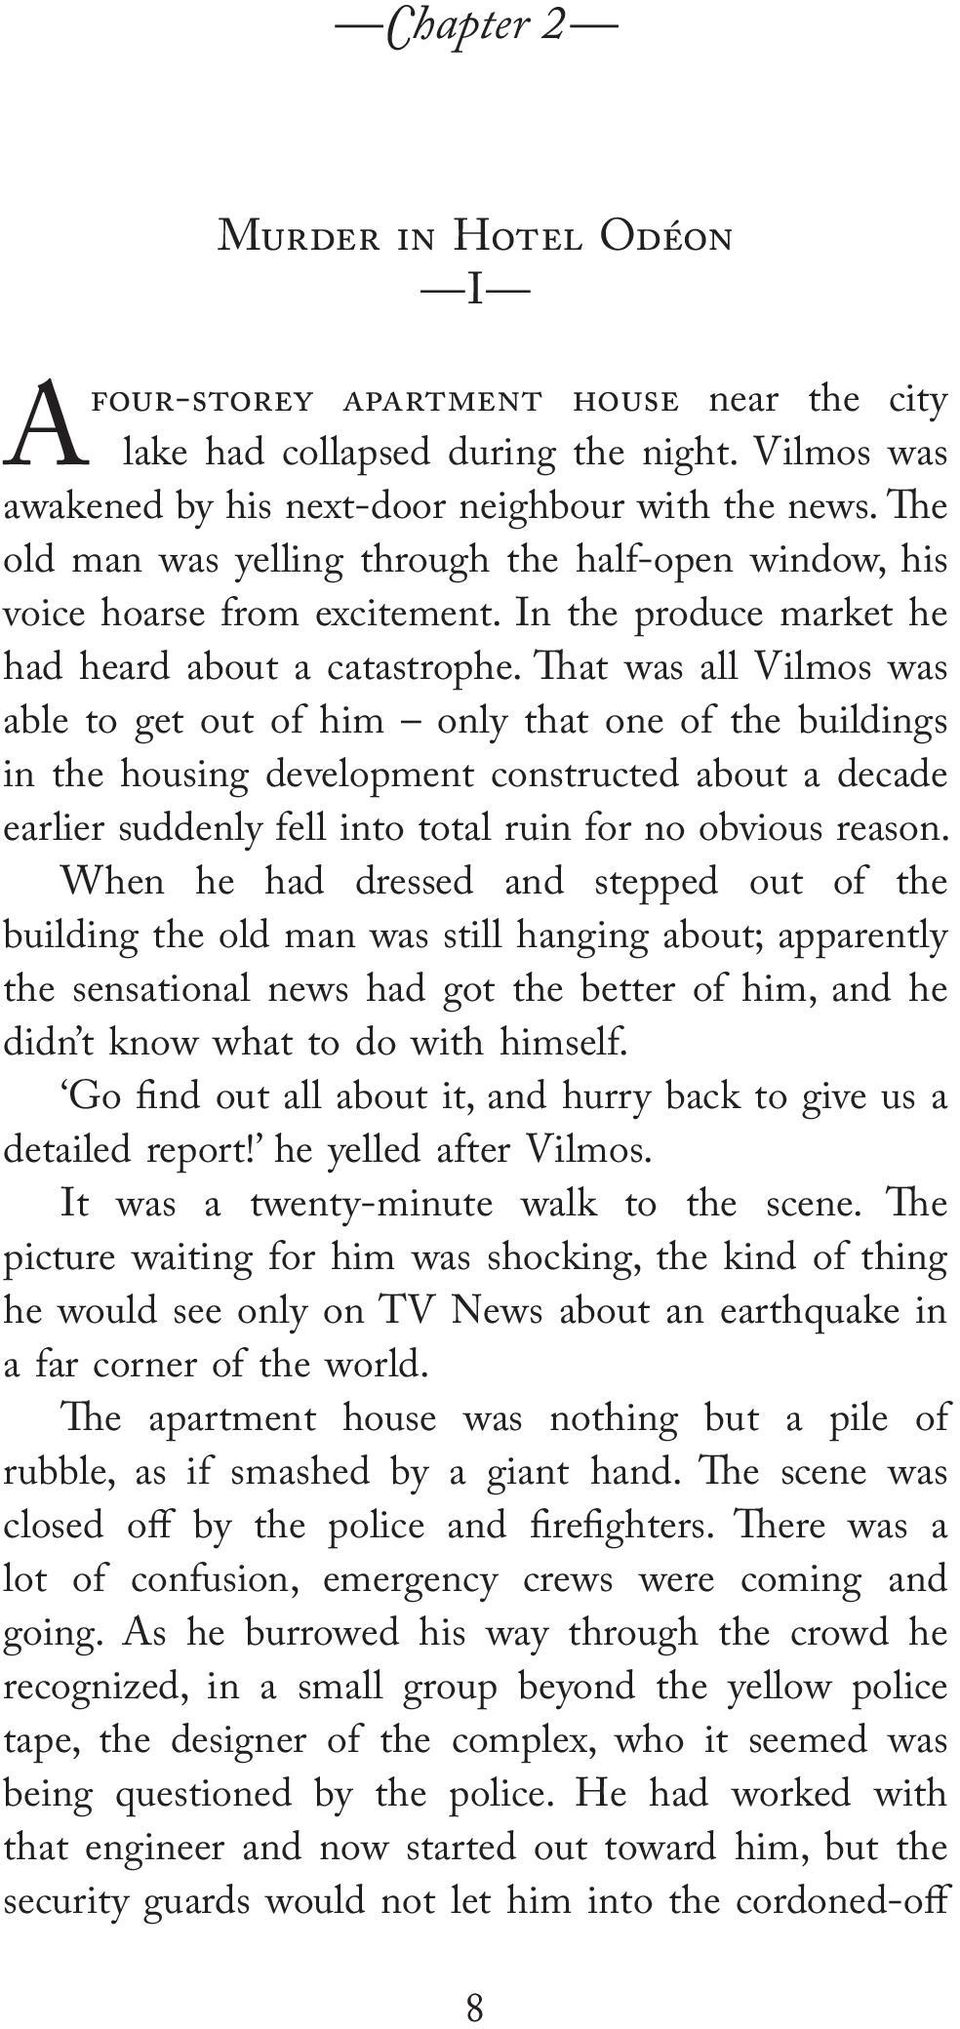 That was all Vilmos was able to get out of him only that one of the buildings in the housing development constructed about a decade earlier suddenly fell into total ruin for no obvious reason.